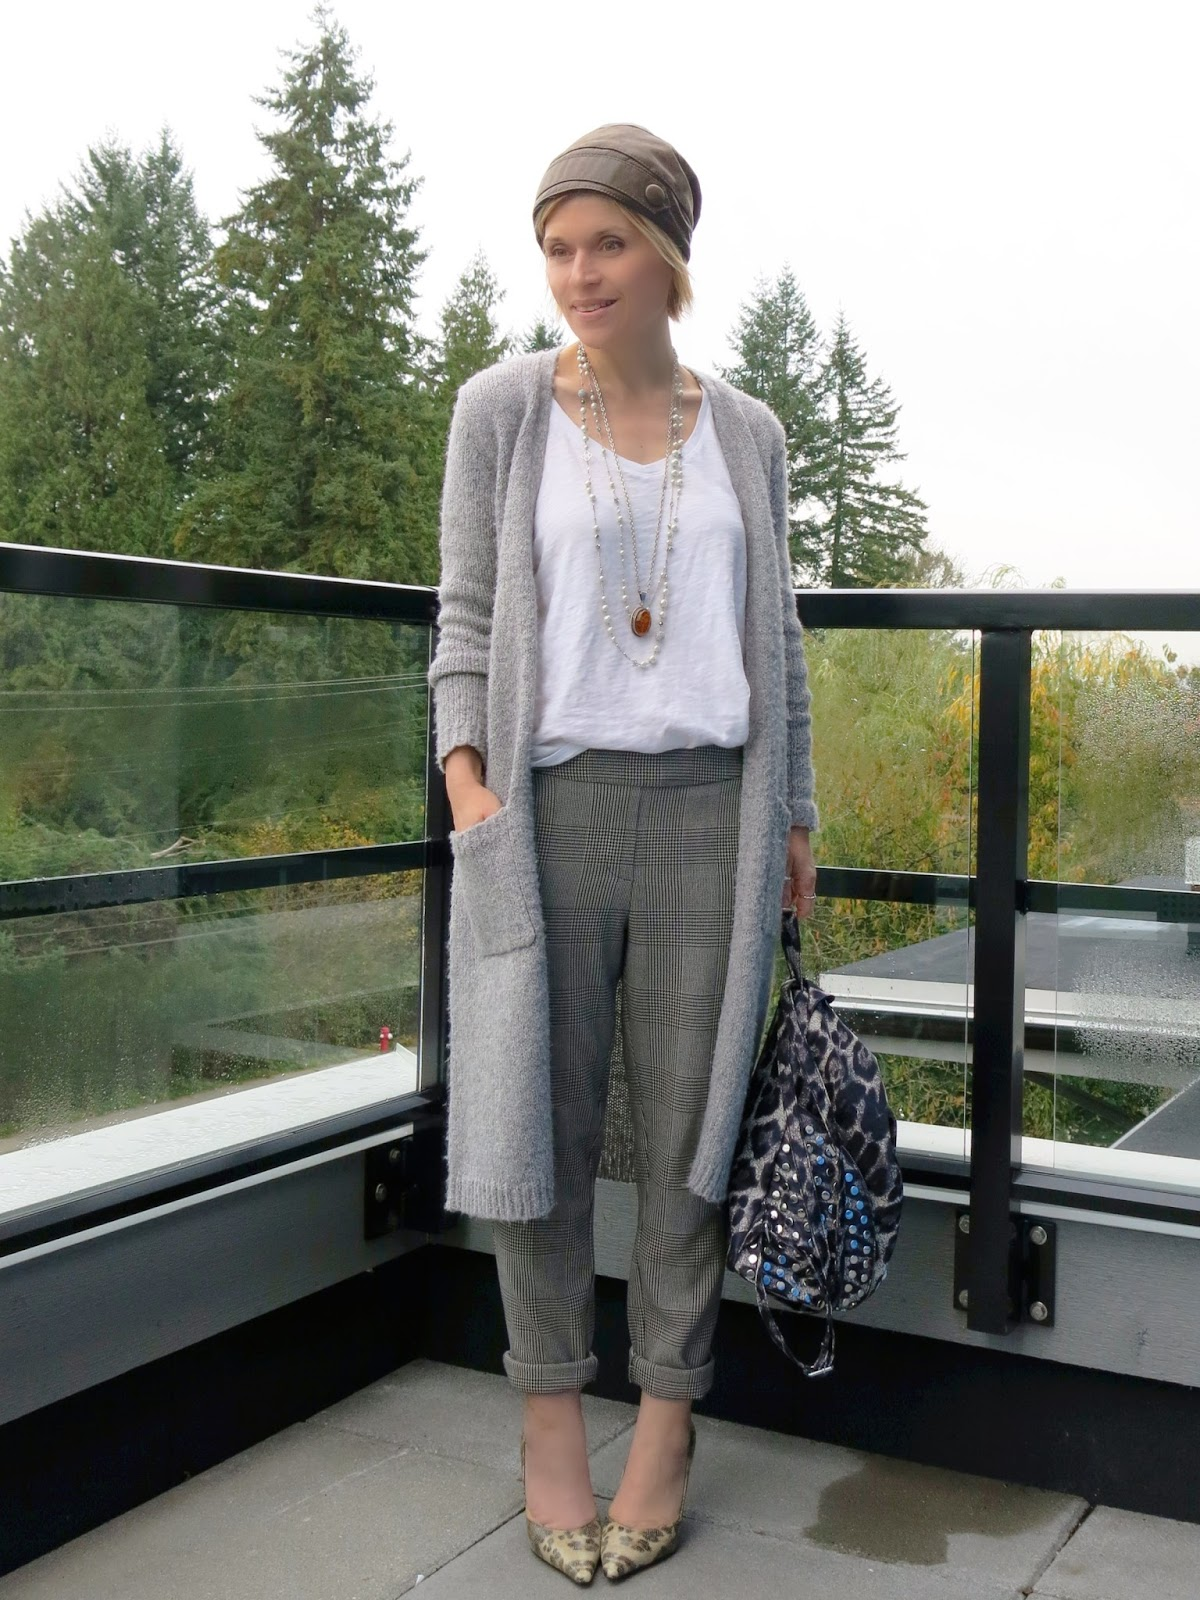 styling slouchy plaid pants and a white tee with layered necklaces, a long cardigan, leather beanie, and leopard-print pumps